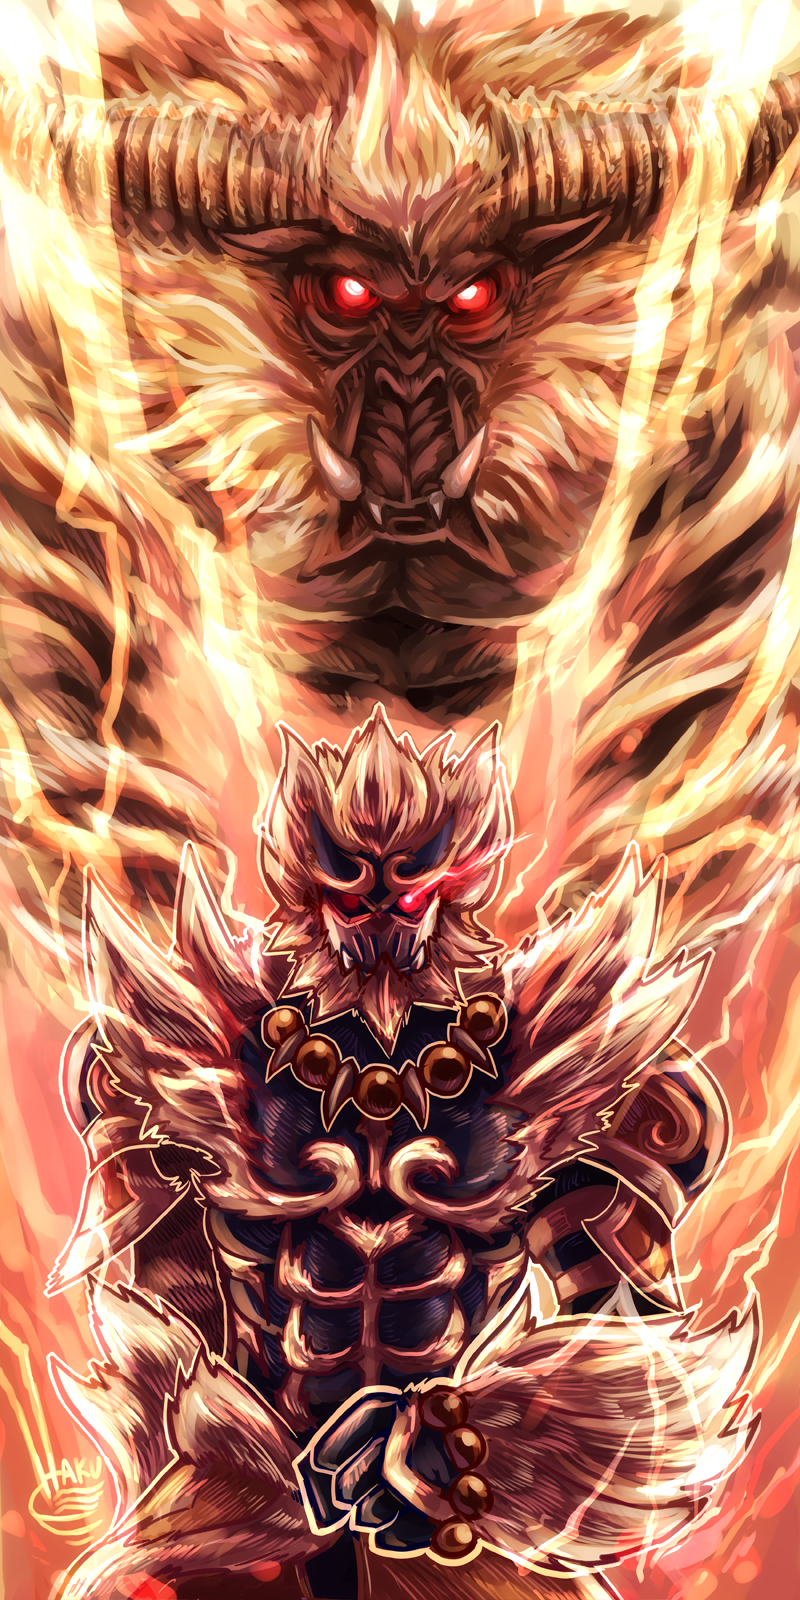 Free Download Rajang Slayer Oc Monsterhunter 800x1600 For Your